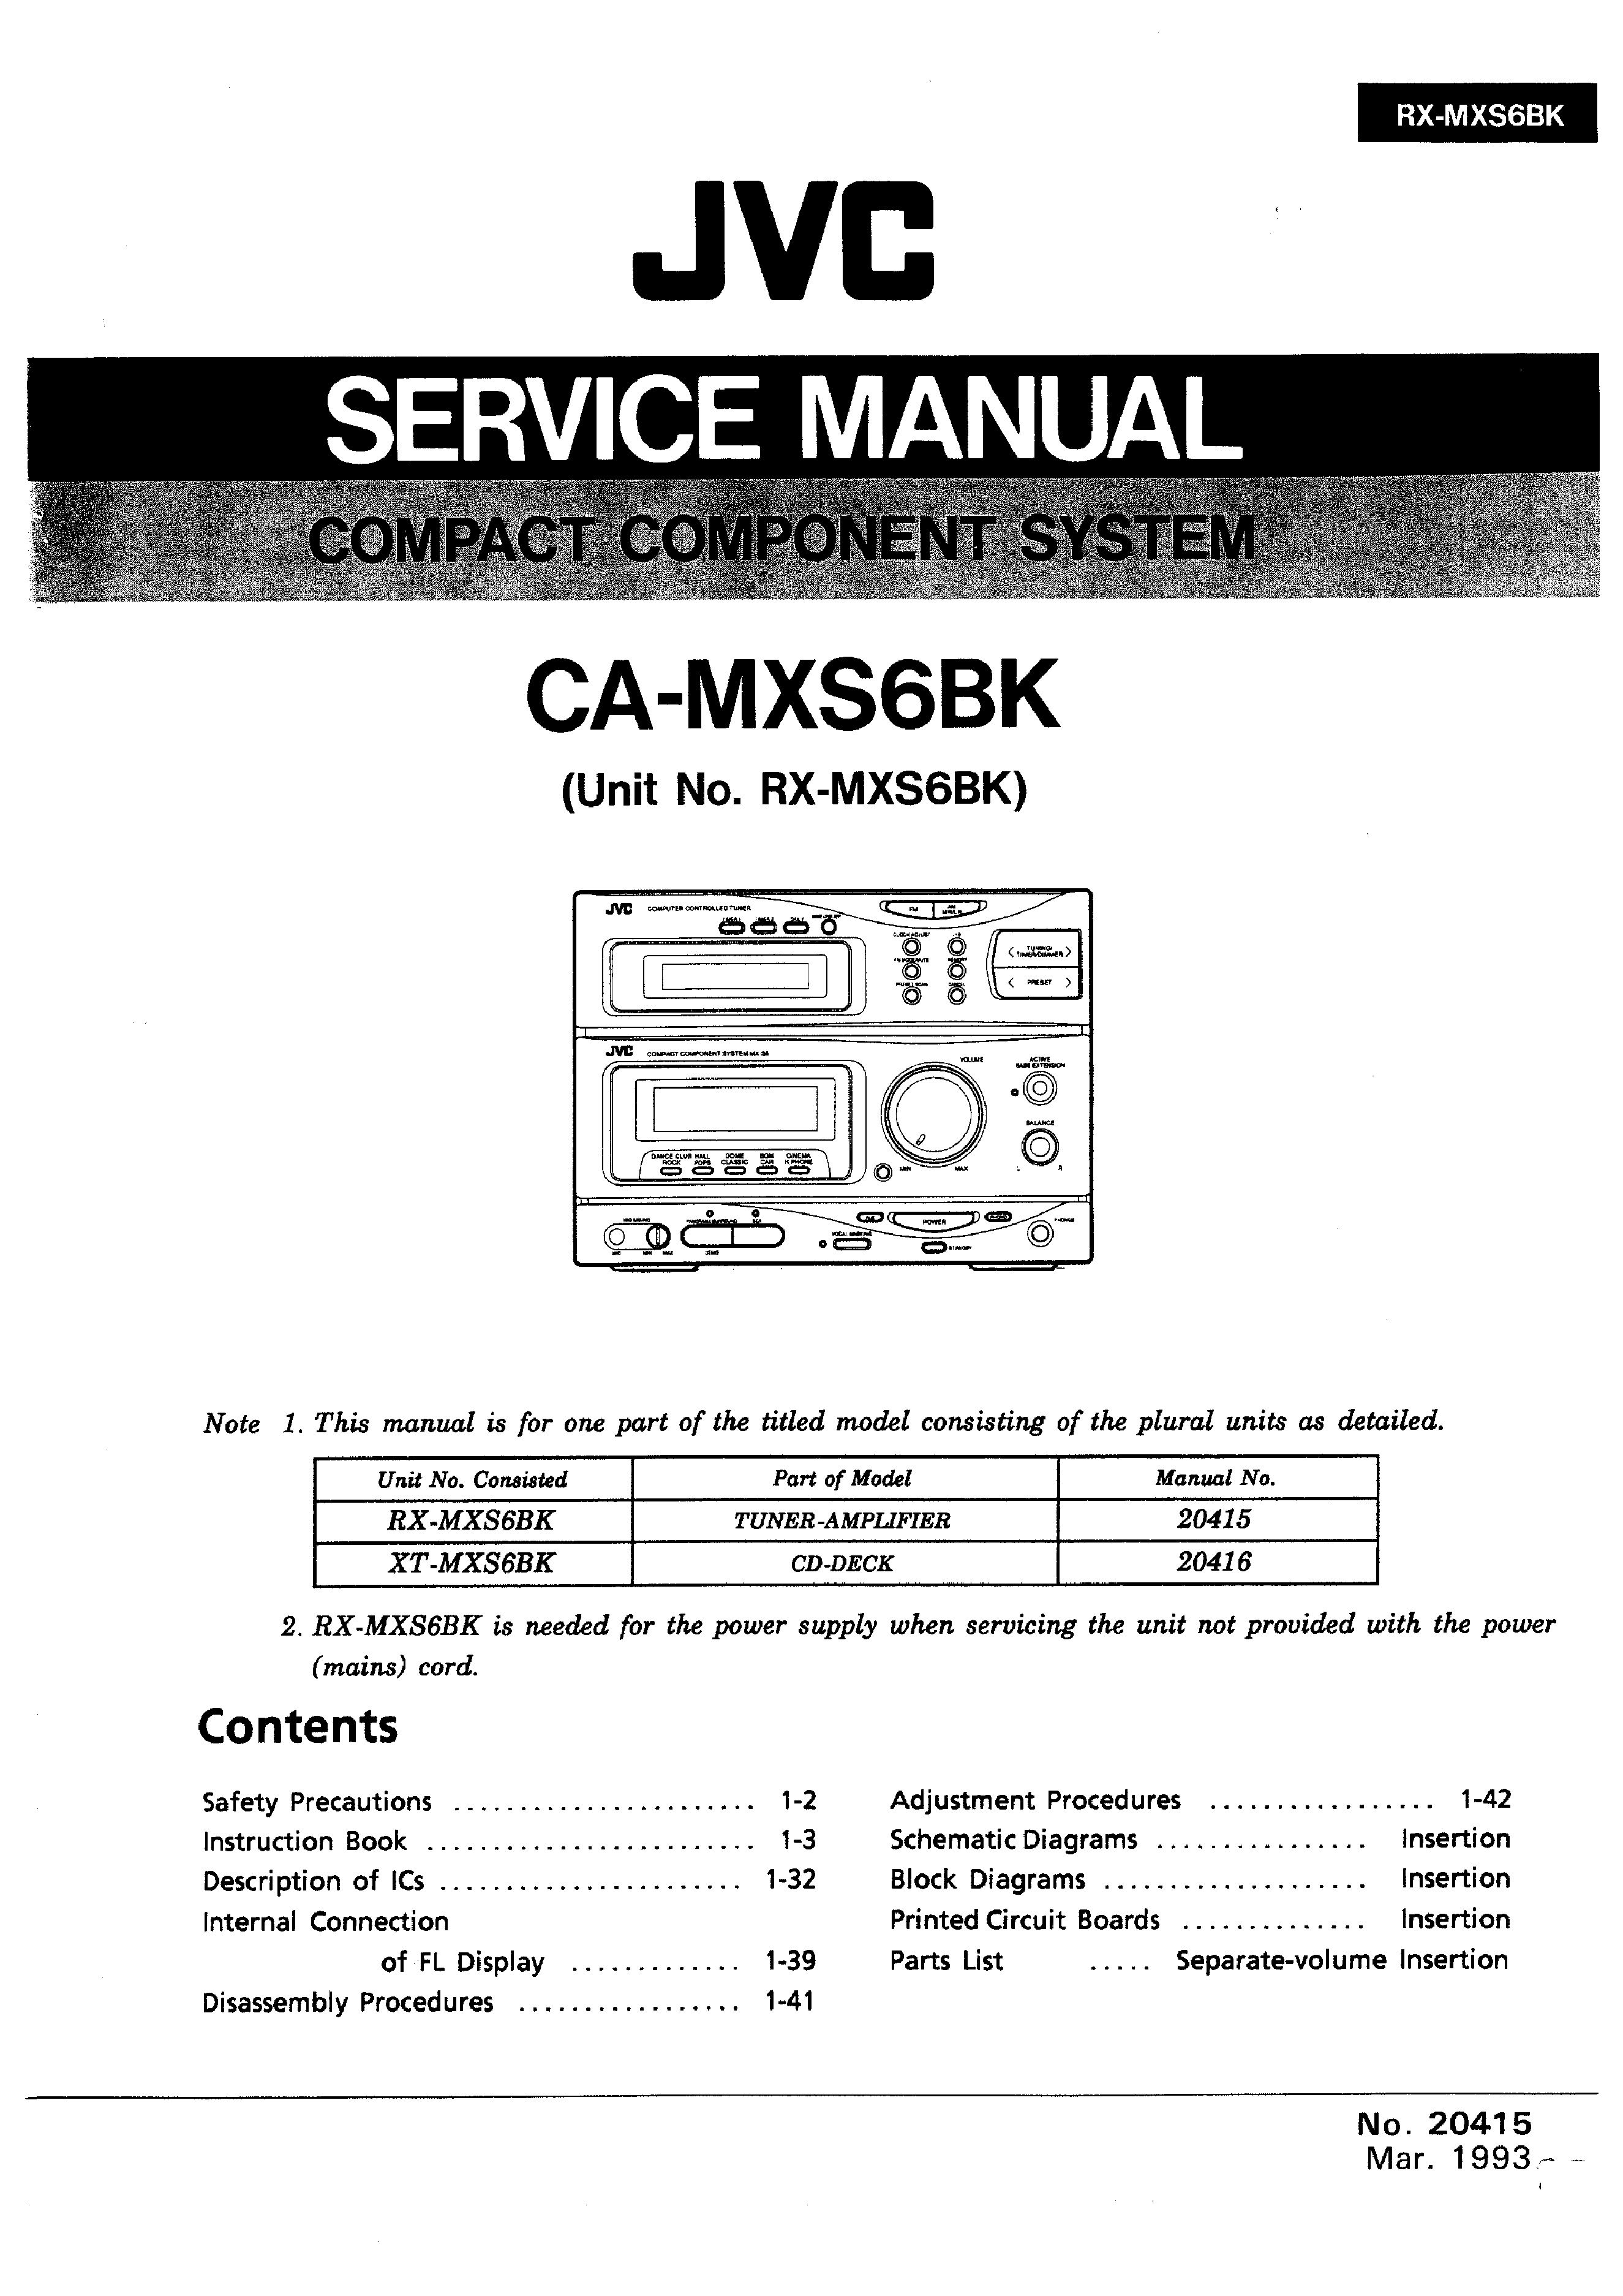 Jvc Camxs6bk Service Manual Immediate Download Schematic Diagram Background Image